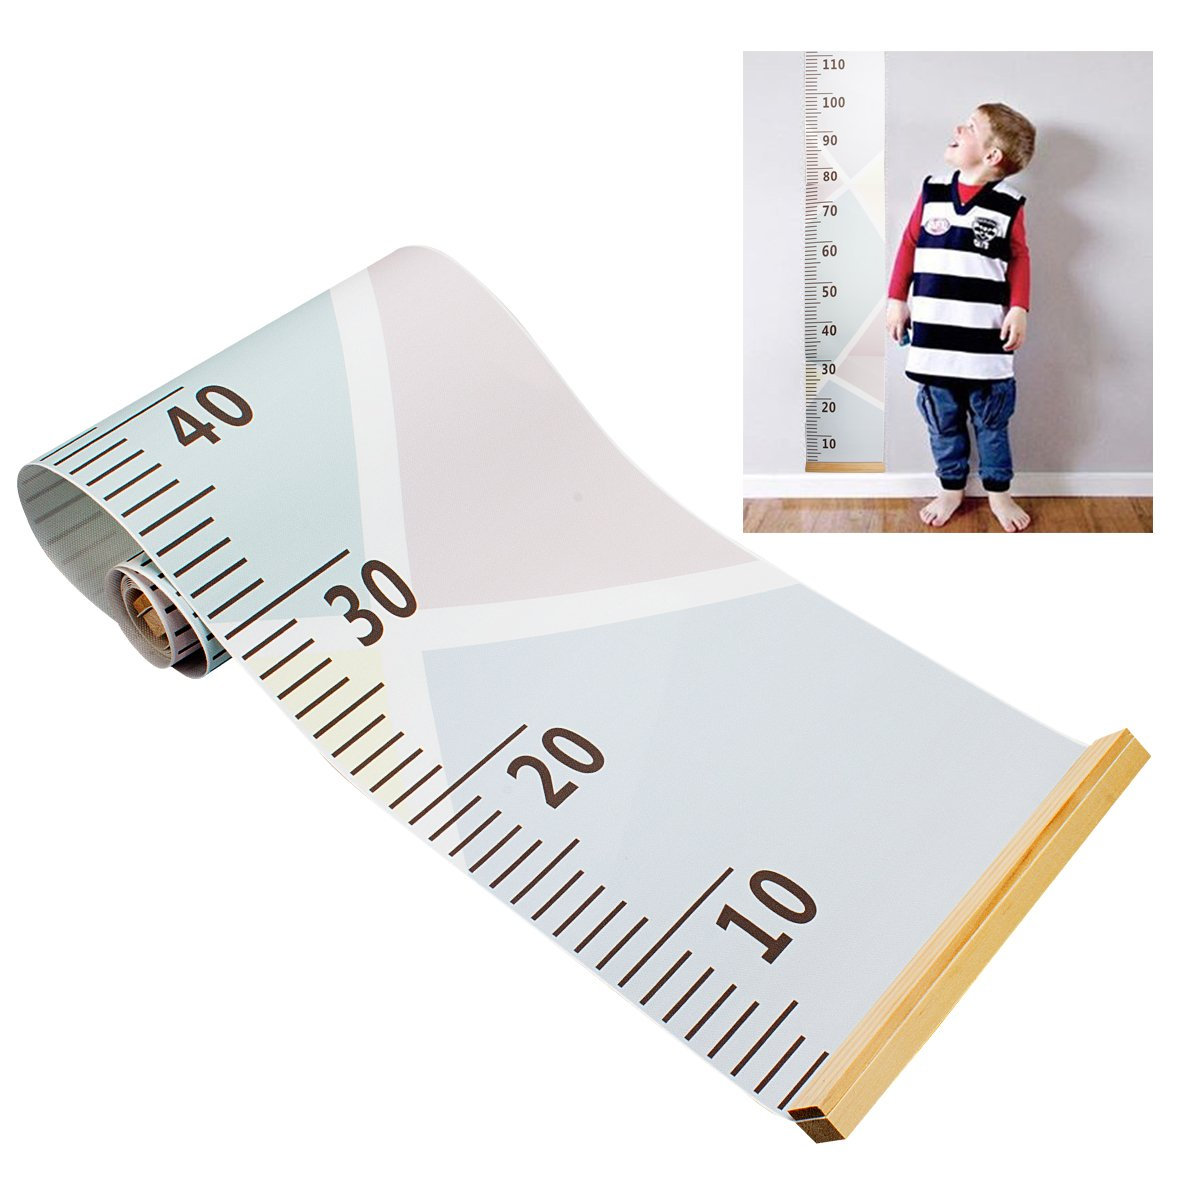 Baby Growth Chart Wall Hanging Ruler, Amariver Canvas Removable Height Growth Chart Wall Room Decoration for Kids Children, Macaron Style, 79'' x 7.9''